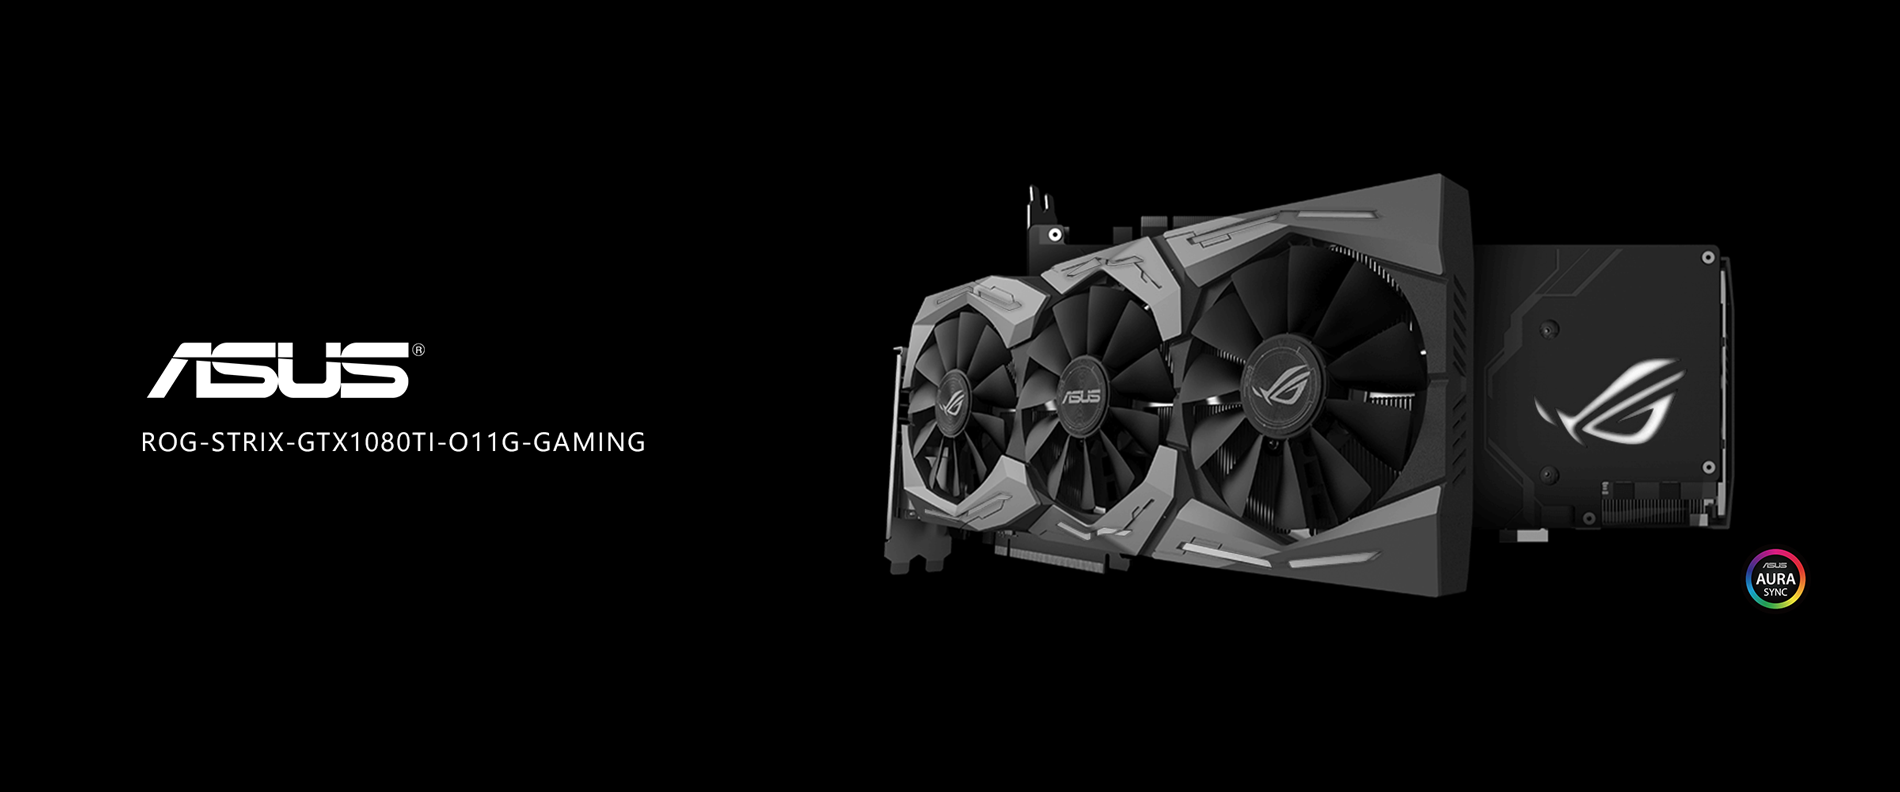 ASUS ROG STRIX GeForce GTX 1080 TI Gaming Graphics Card